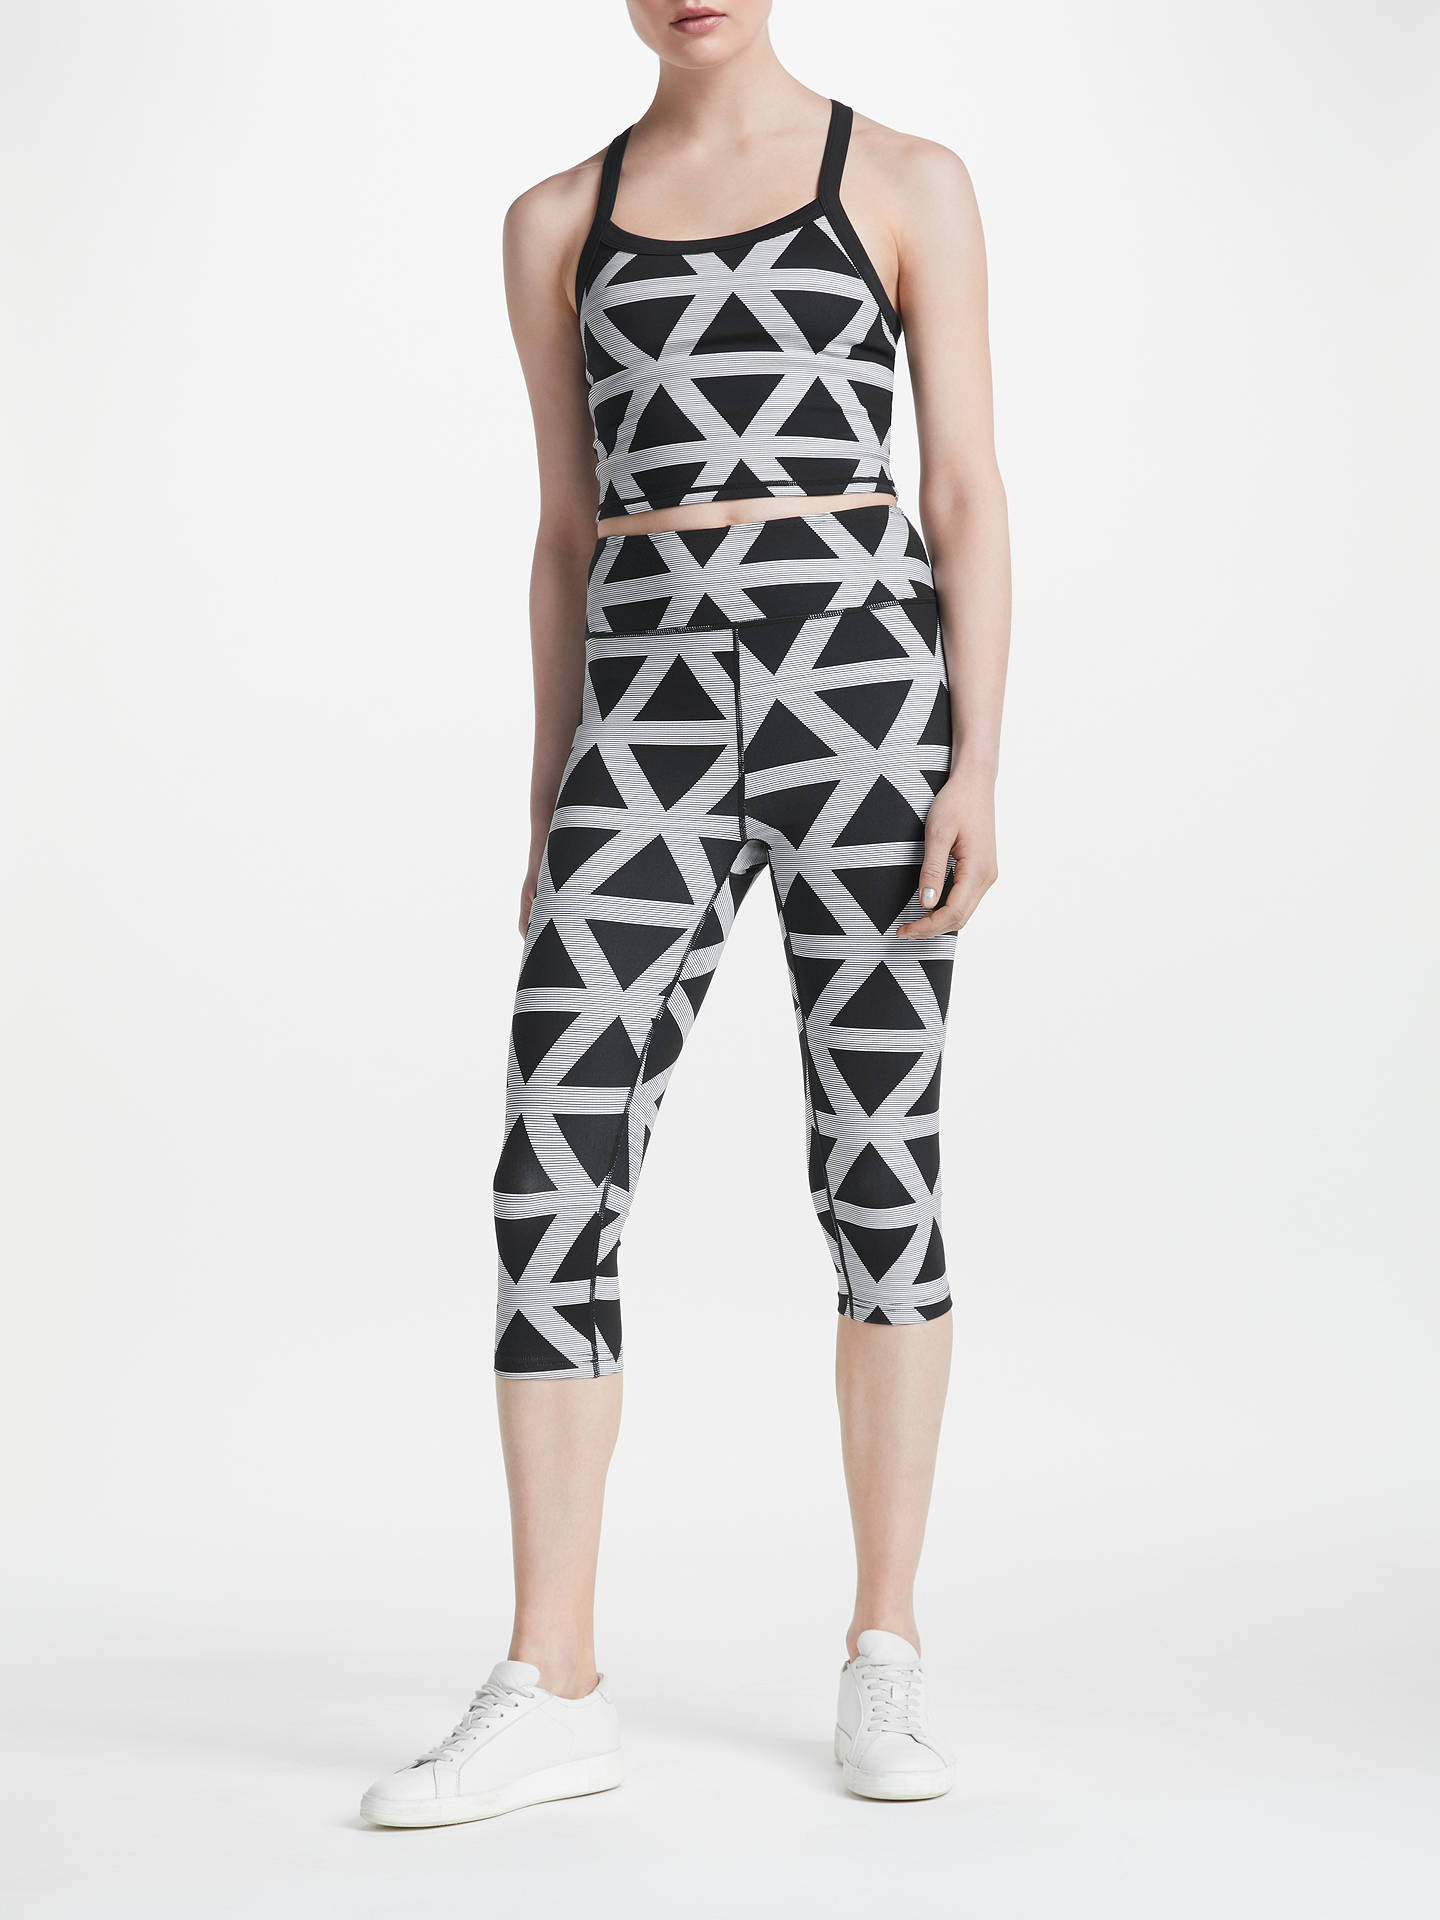 Buy PATTERNITY + John Lewis Triangle Print Bra Top, Black/White, M Online at johnlewis.com